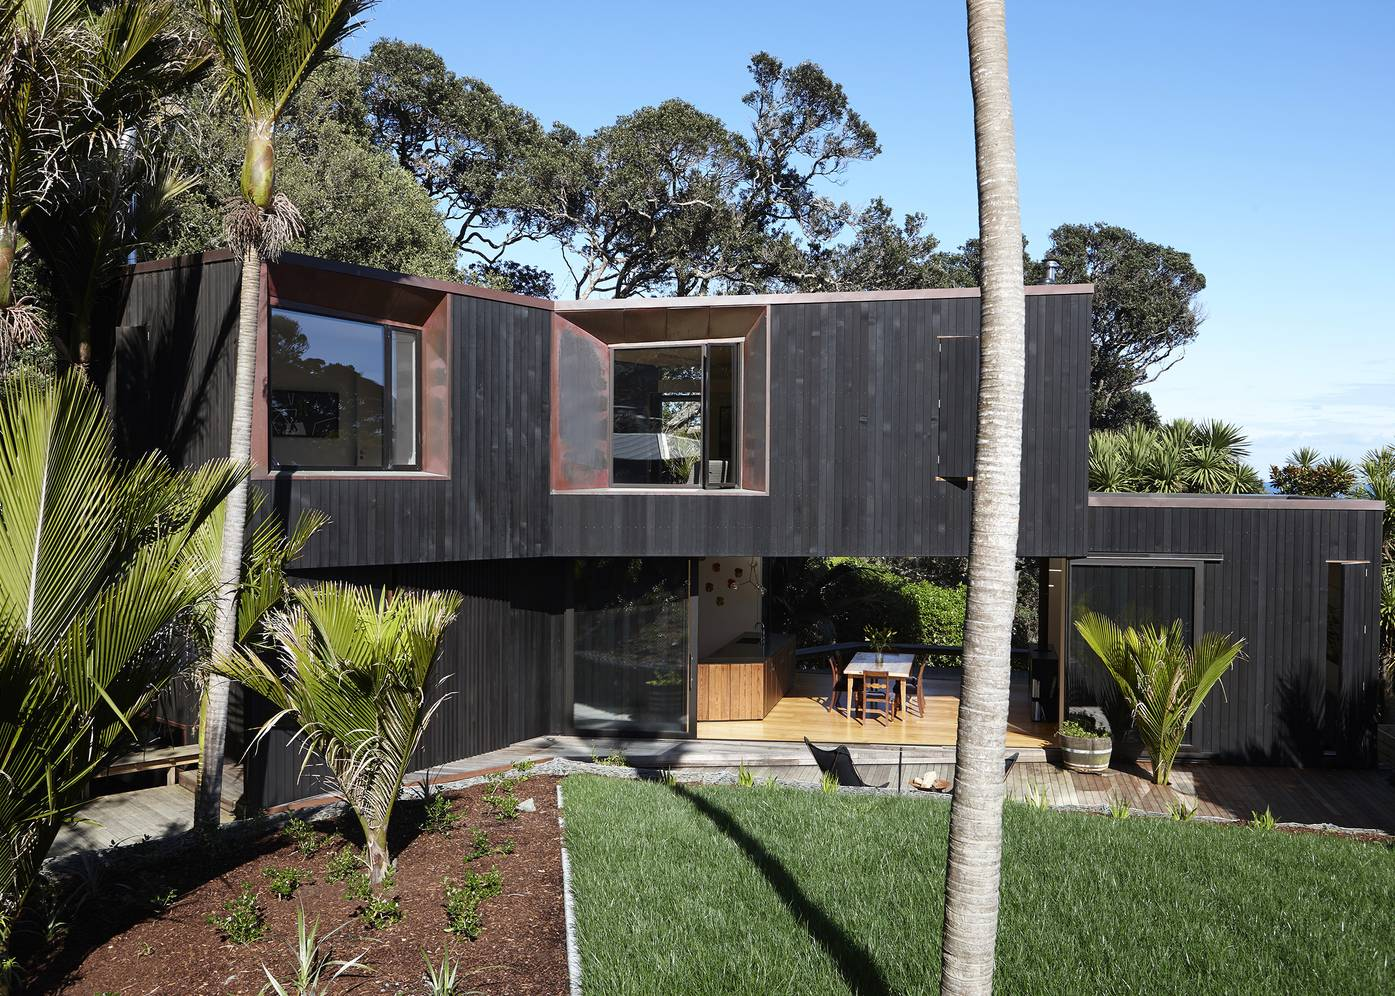 Muriwai House by Herbst Architects